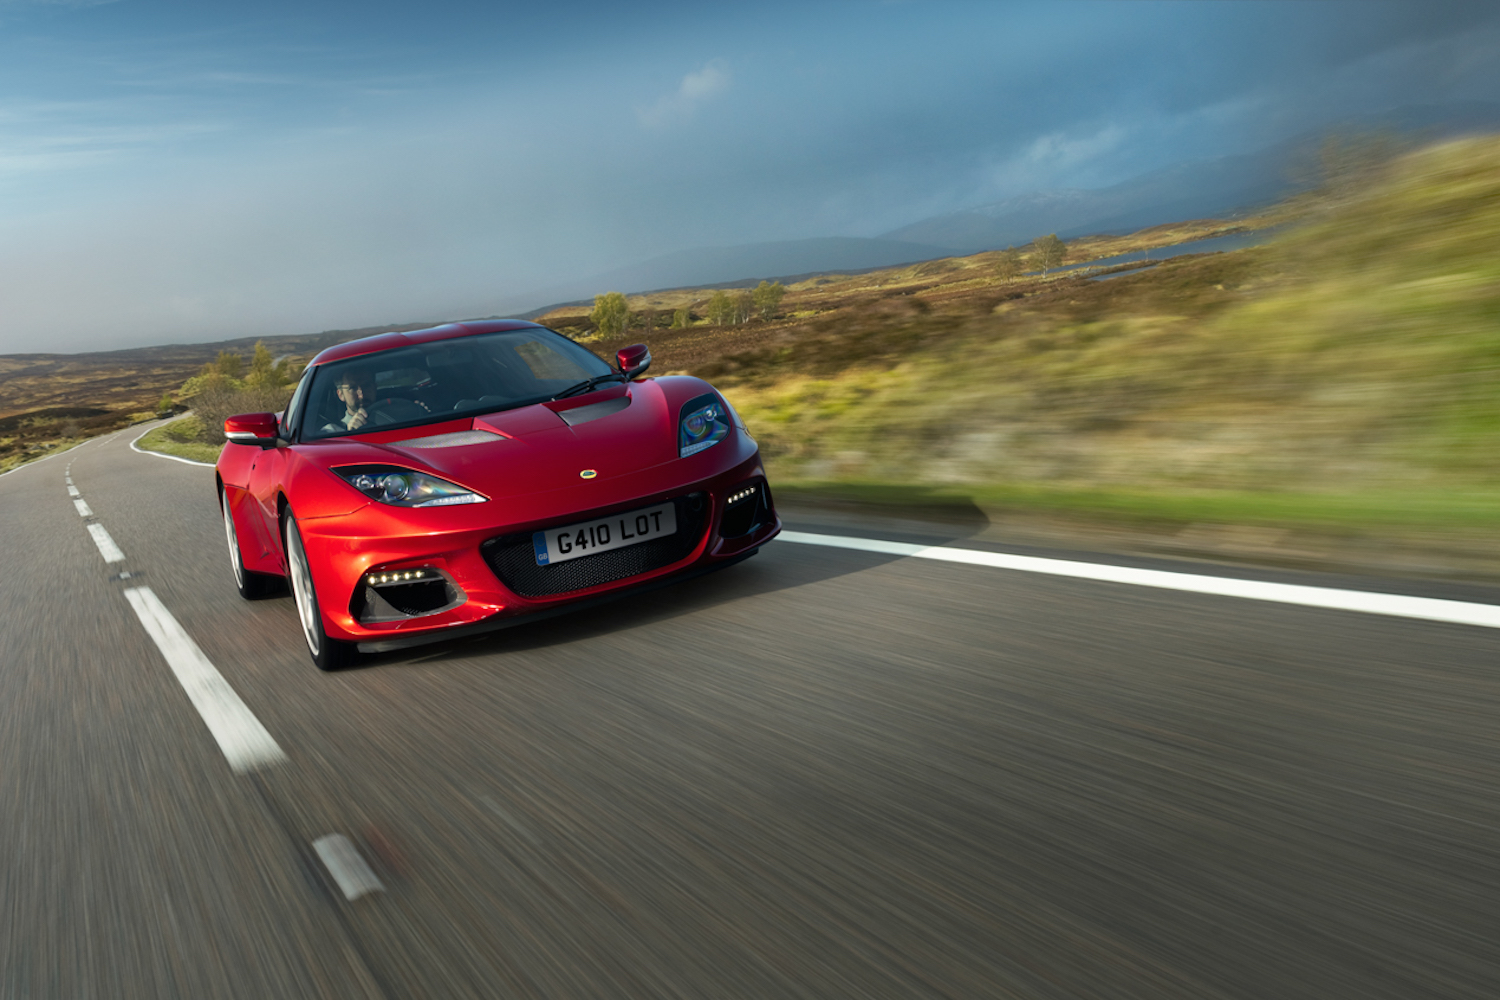 Car News | Lotus launches laid-back Evora GT410 | CompleteCar.ie